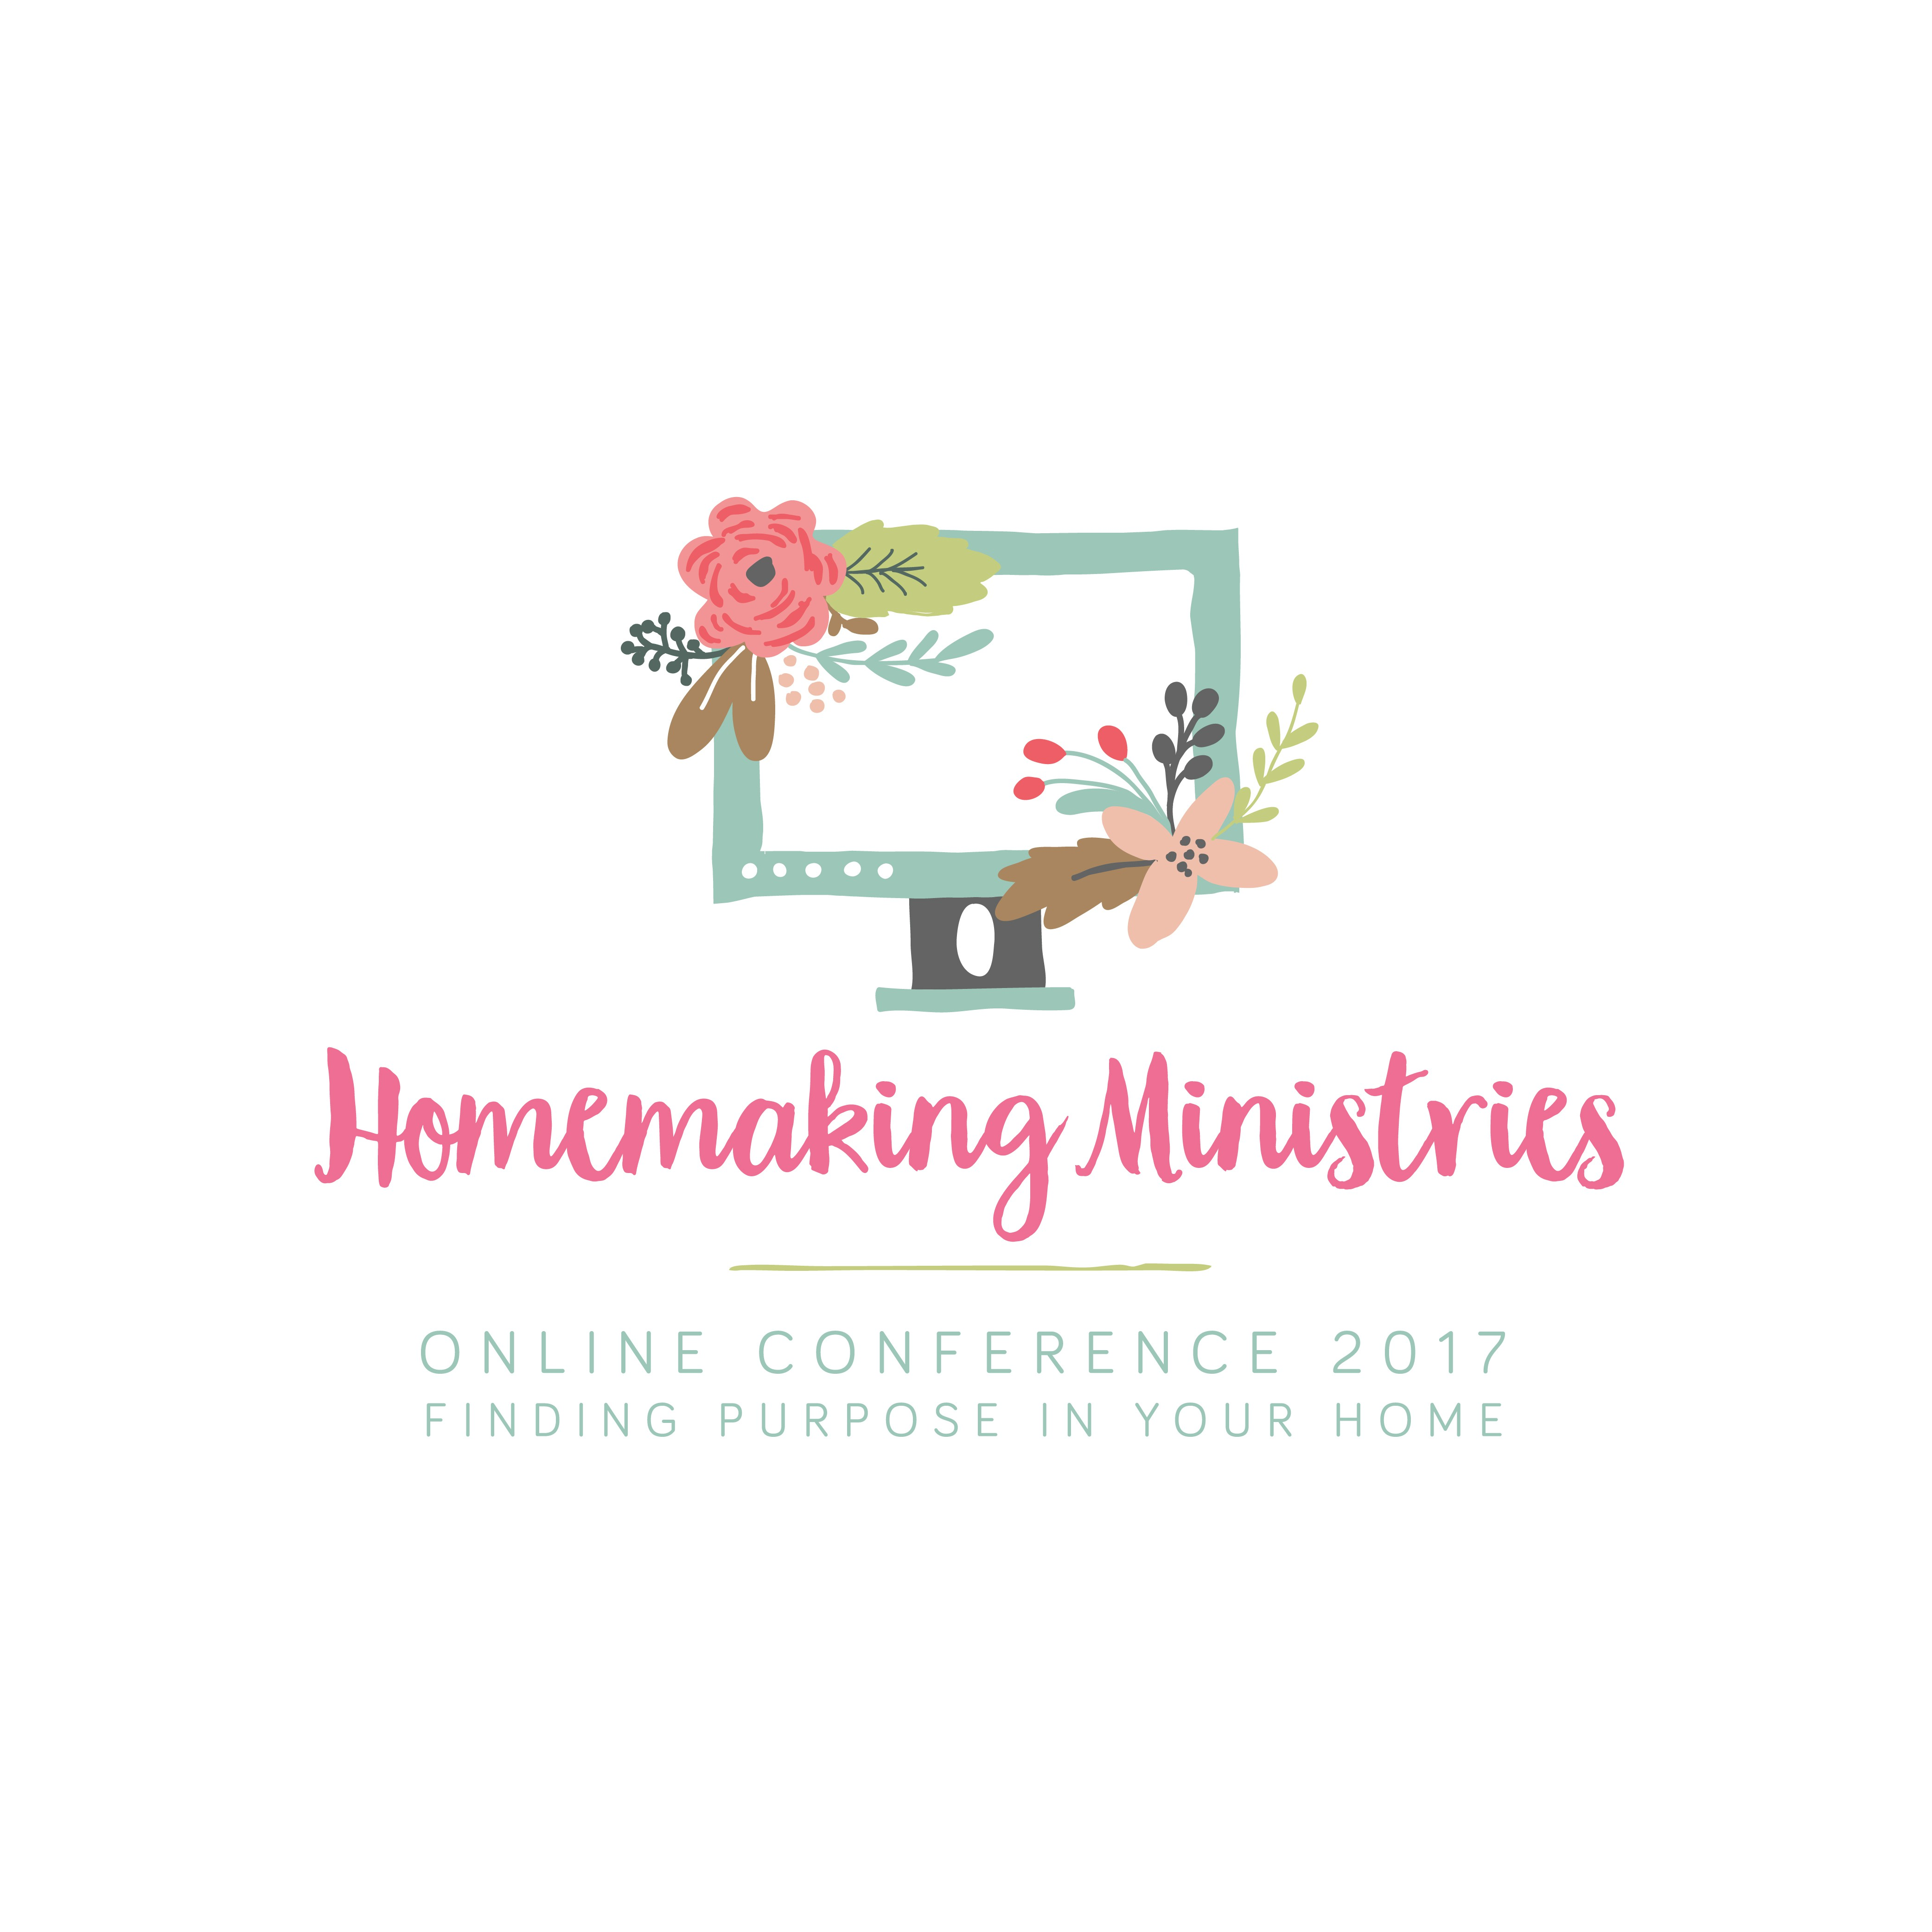 Homemaking conference 2017